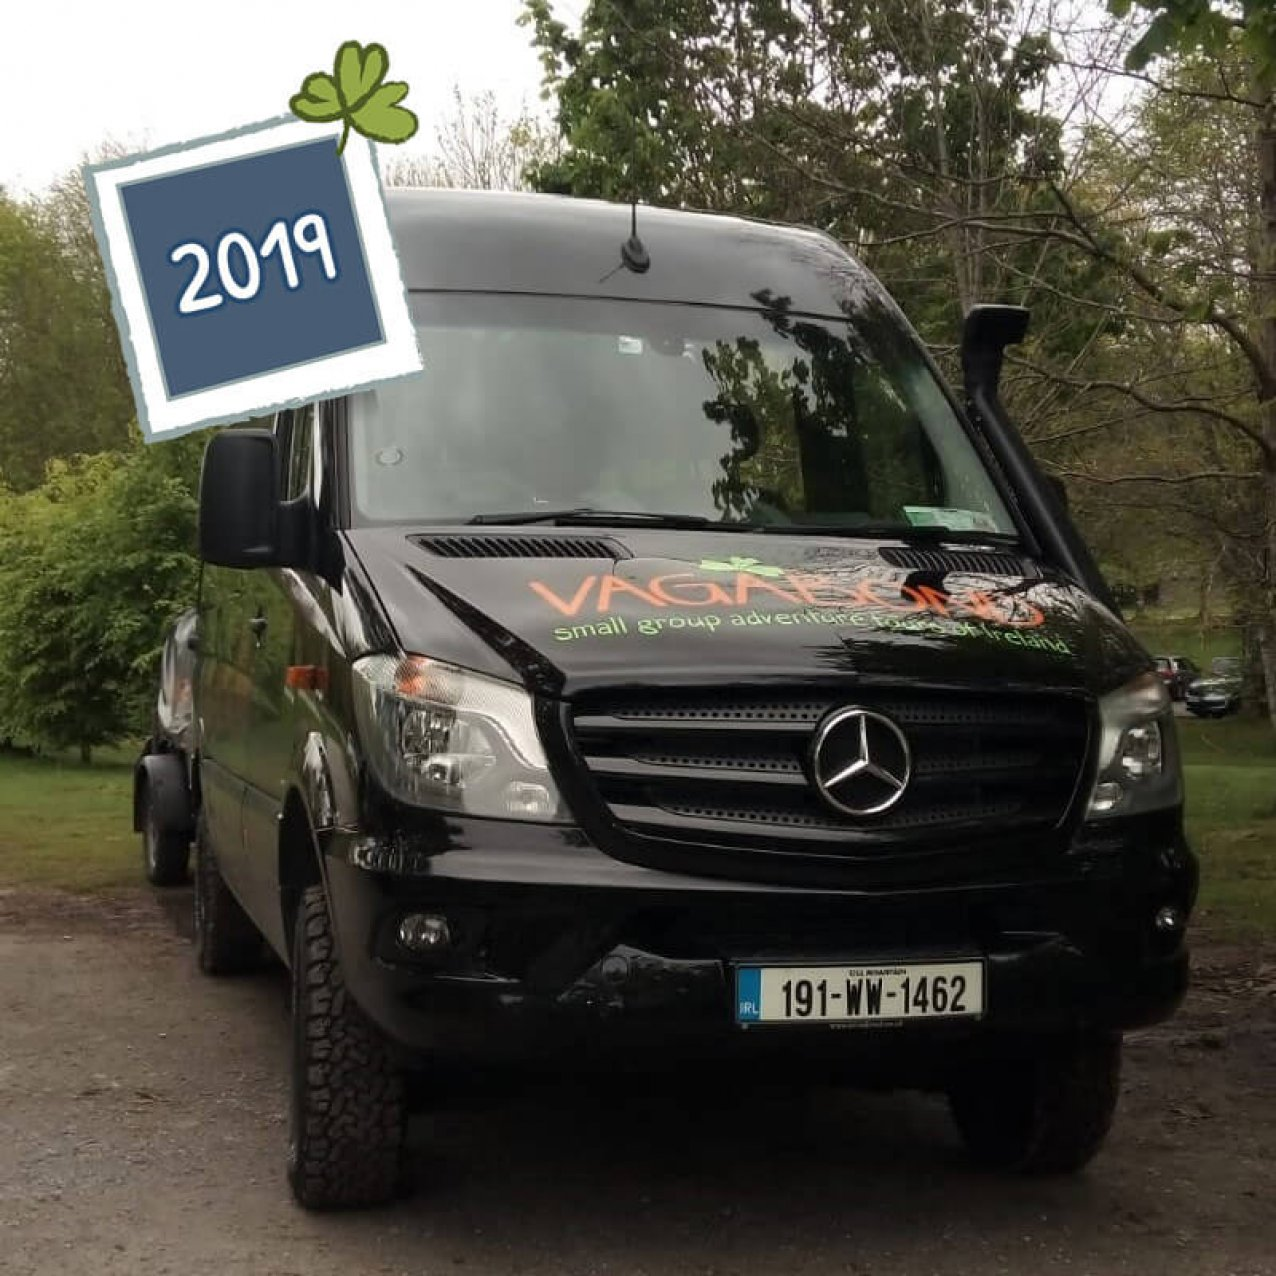 Front view of a 2019 Mercedes VagaTron 4x4 tour vehicle with 2019 date graphic in the upper left corner